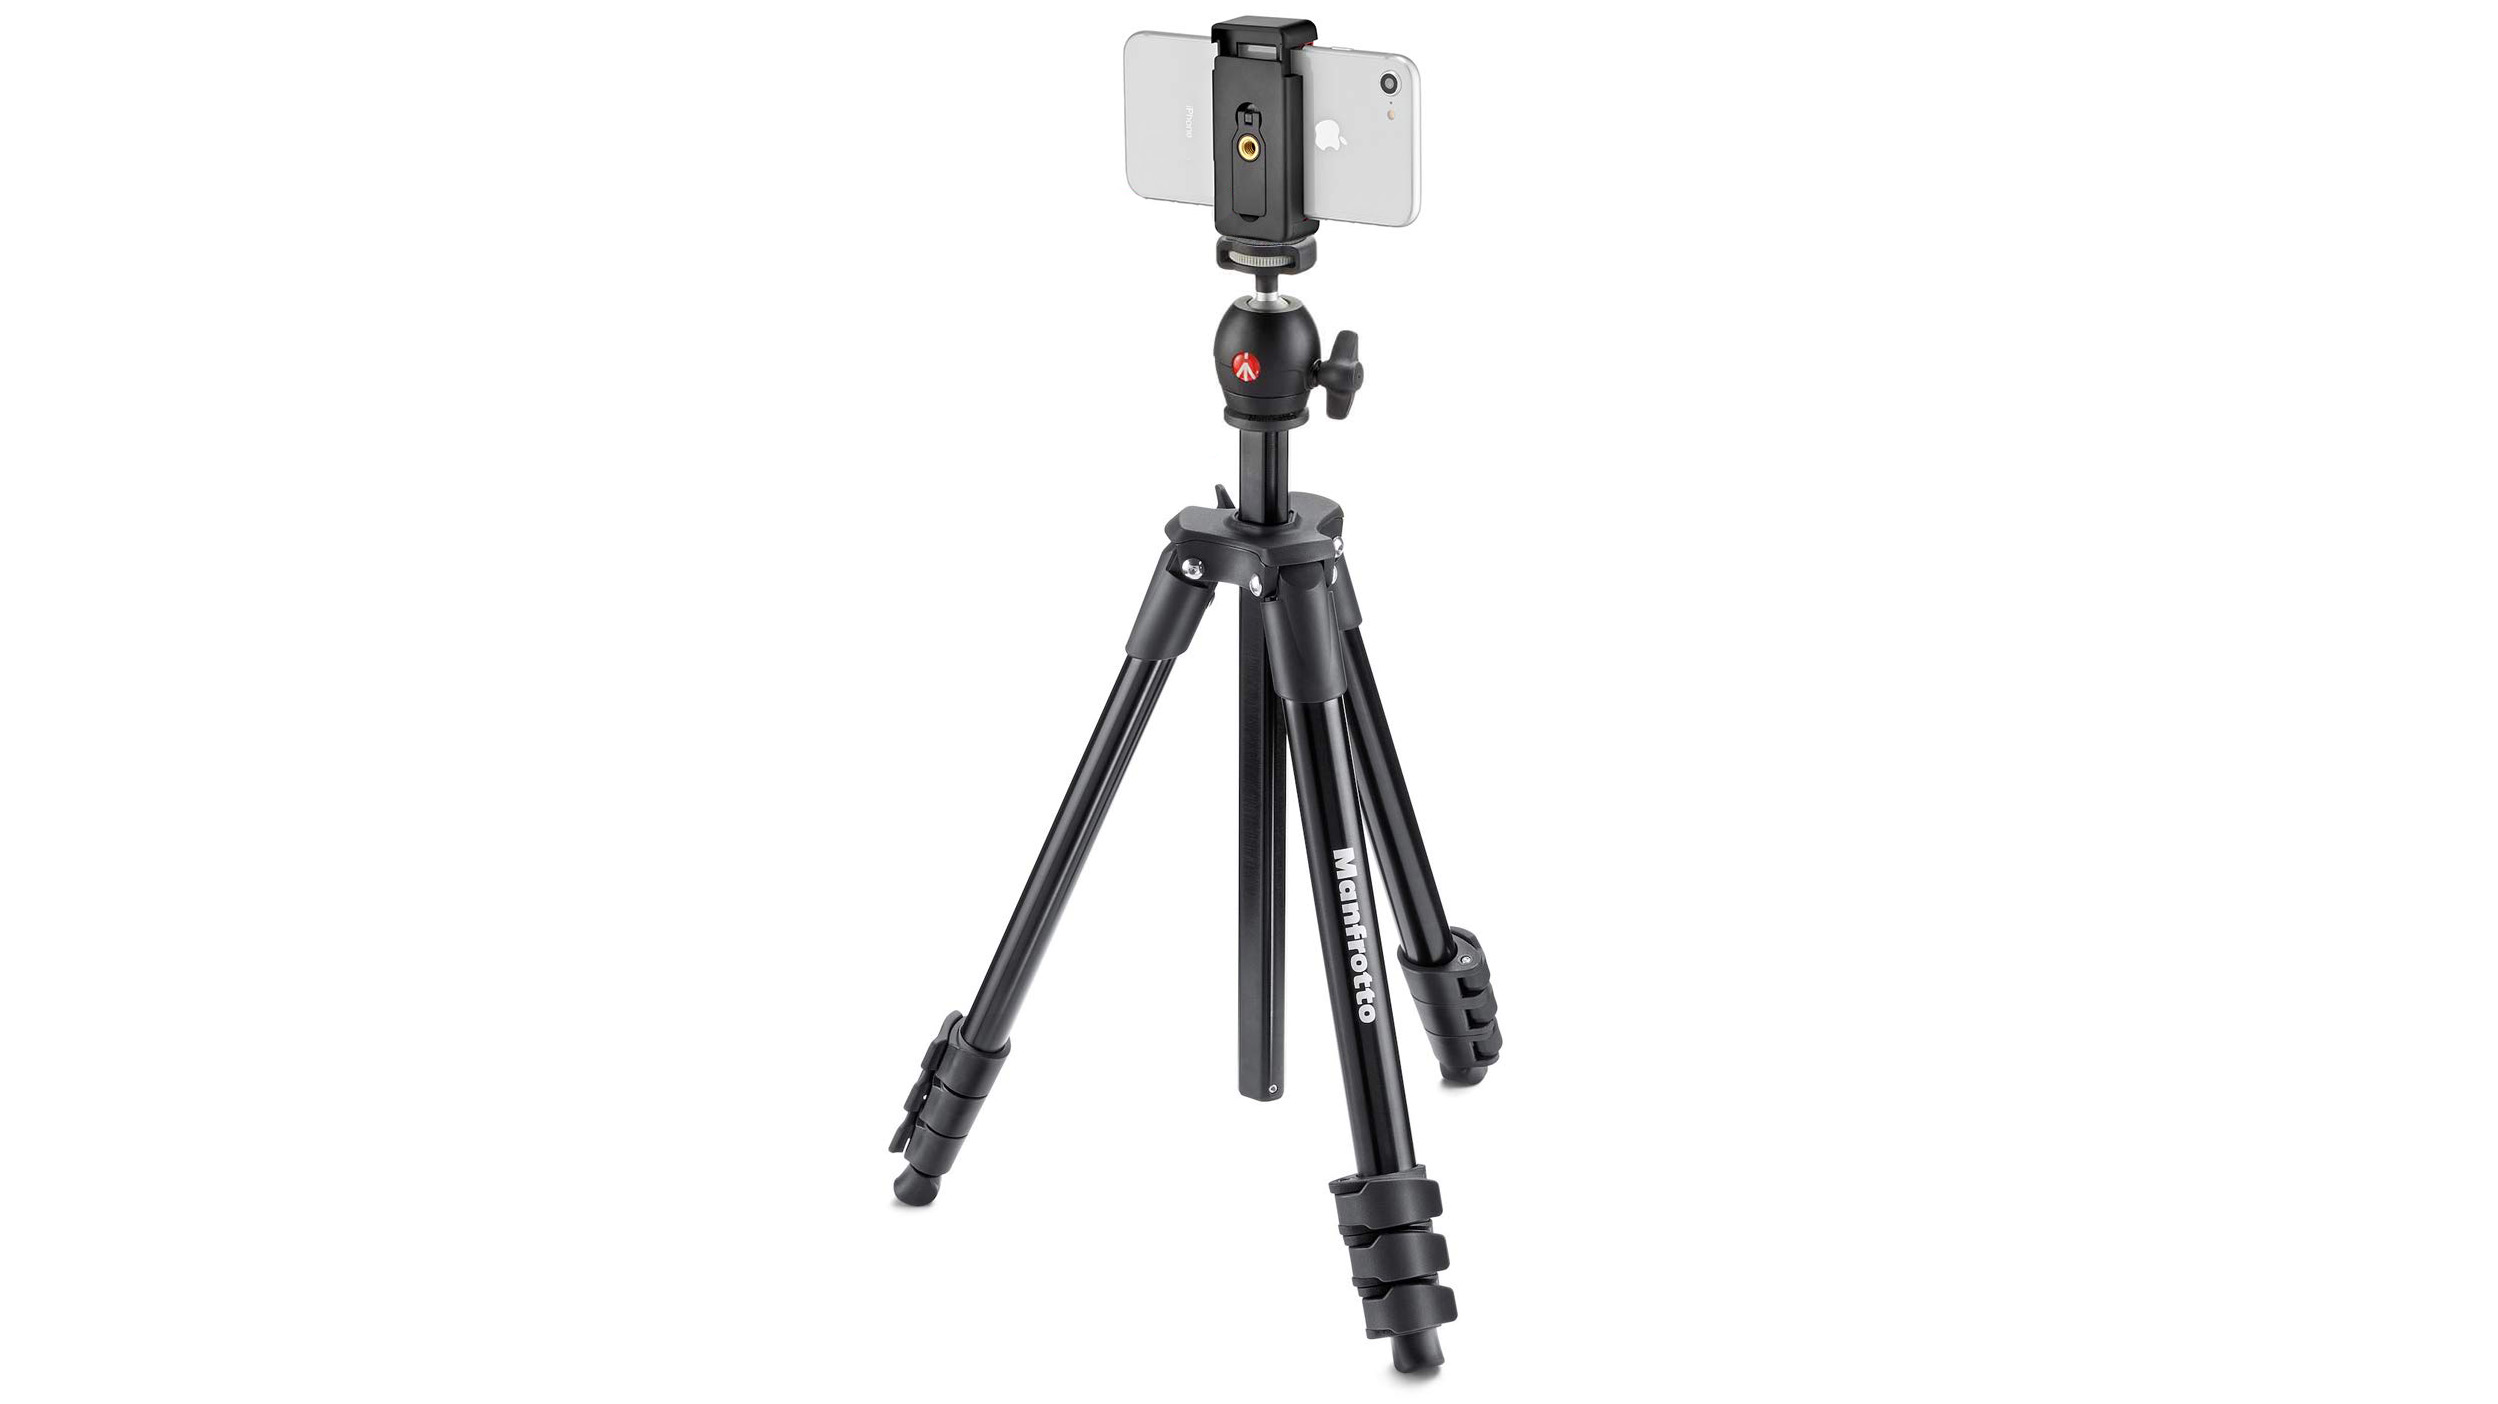 Best smartphone tripods: Manfrotto Compact Light Smart